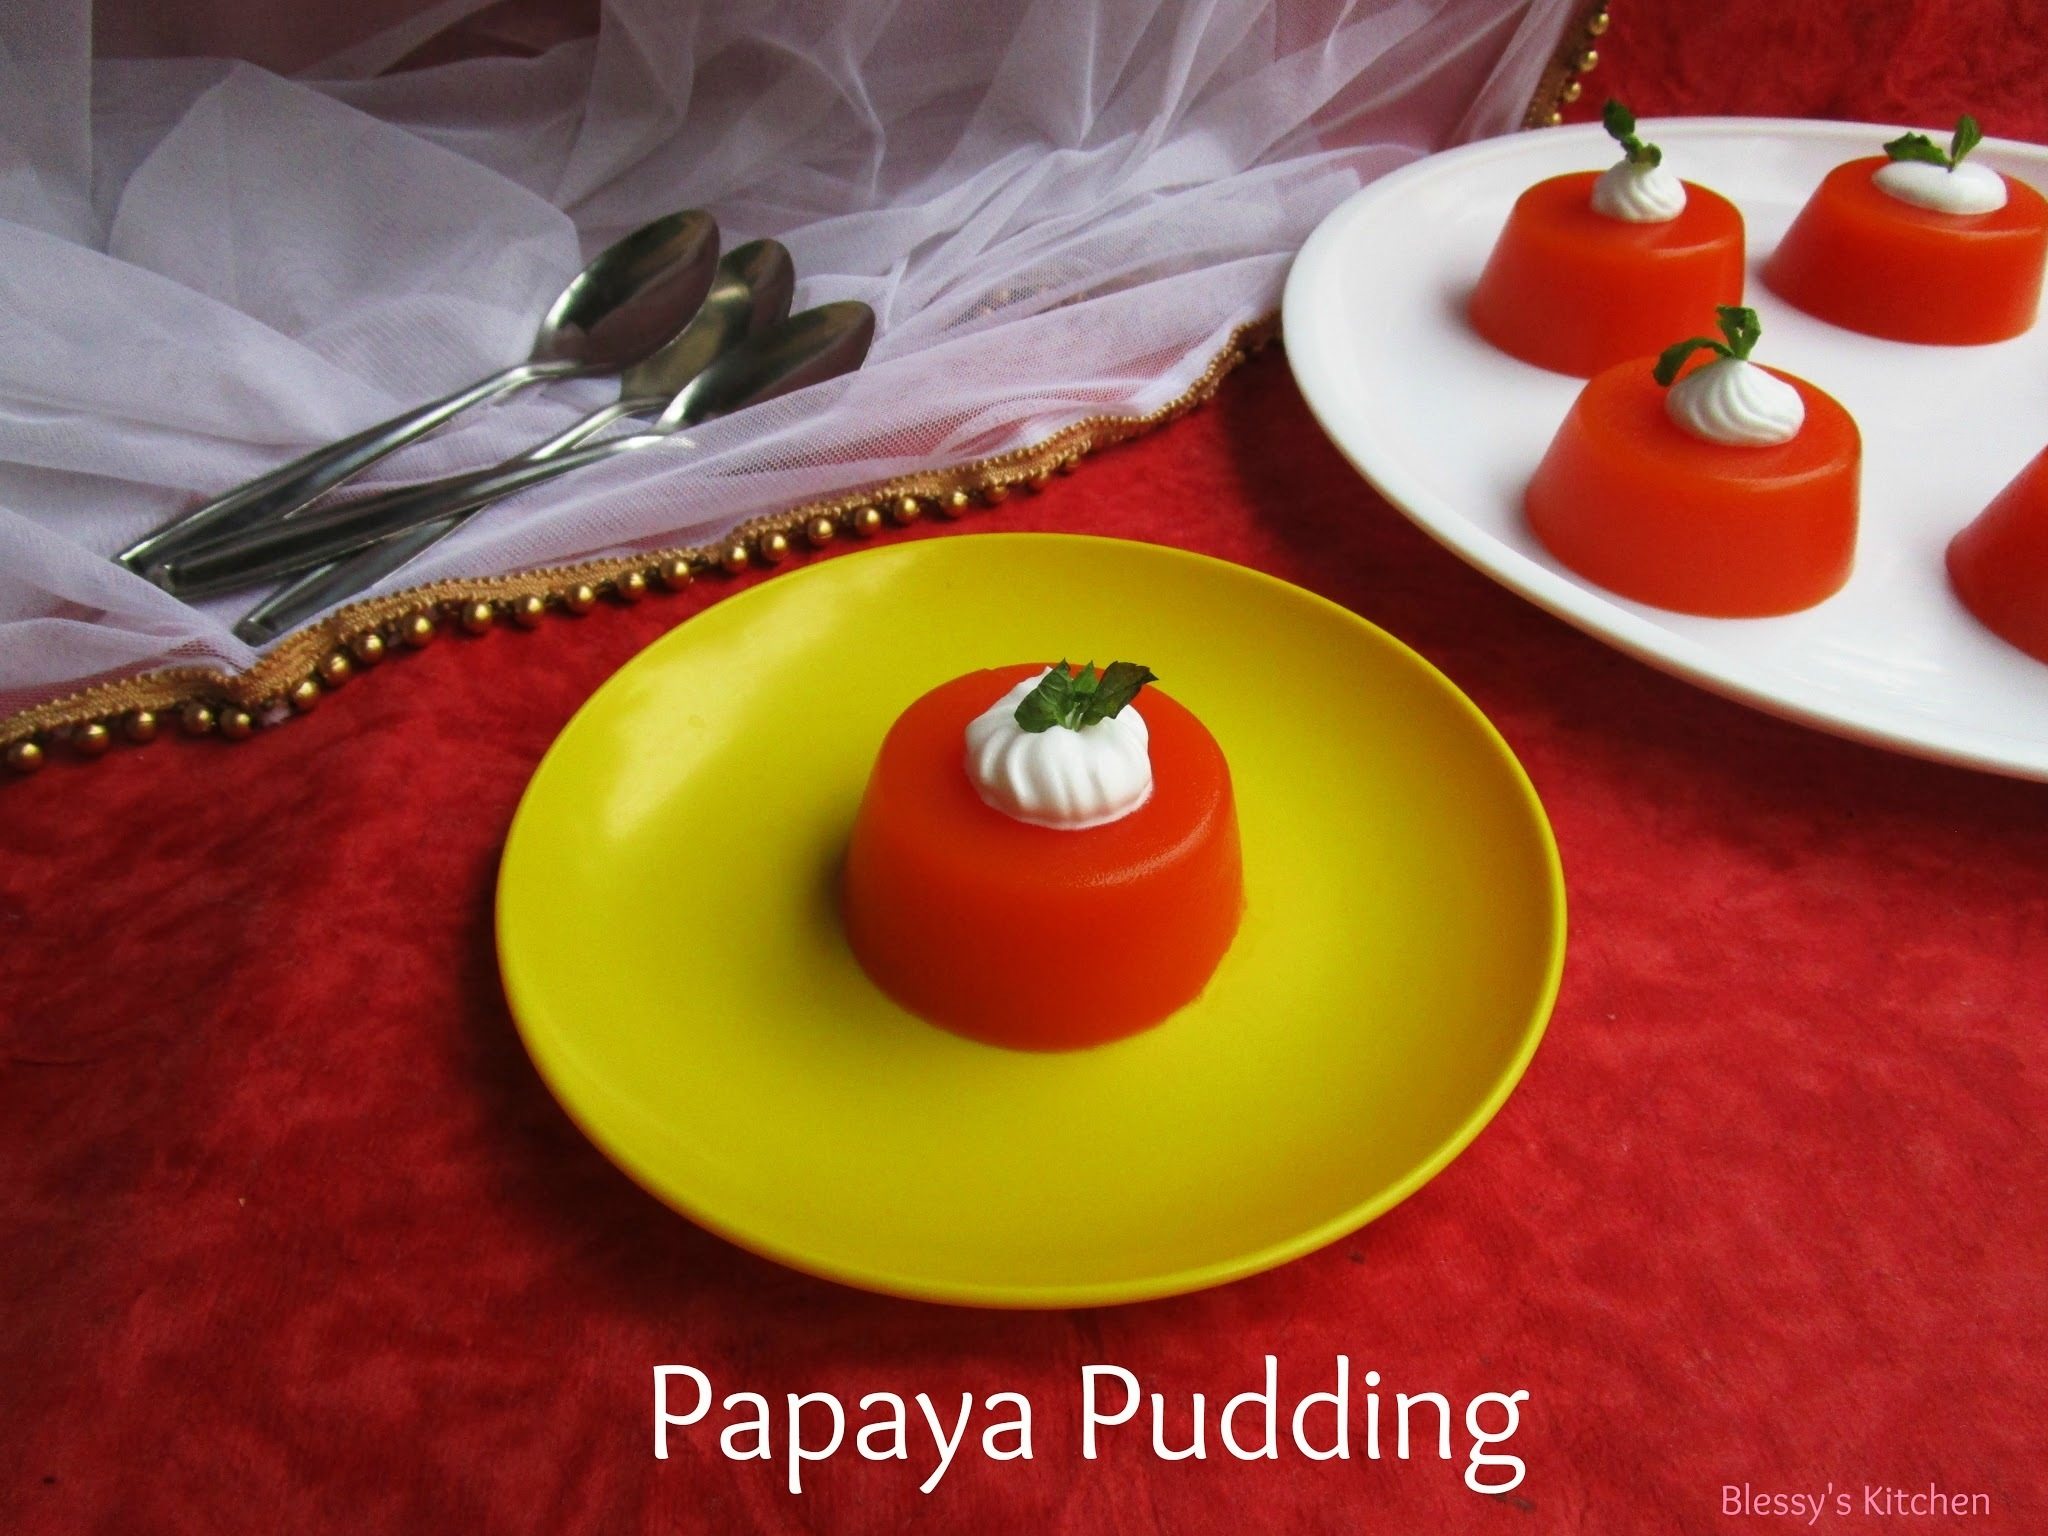 Papaya Pudding/ Agar Agar Papaya Pudding/ China Grass Papaya Pudding/ Kanten Papaya Pudding/ Diabetic Friendly Papaya Pudding